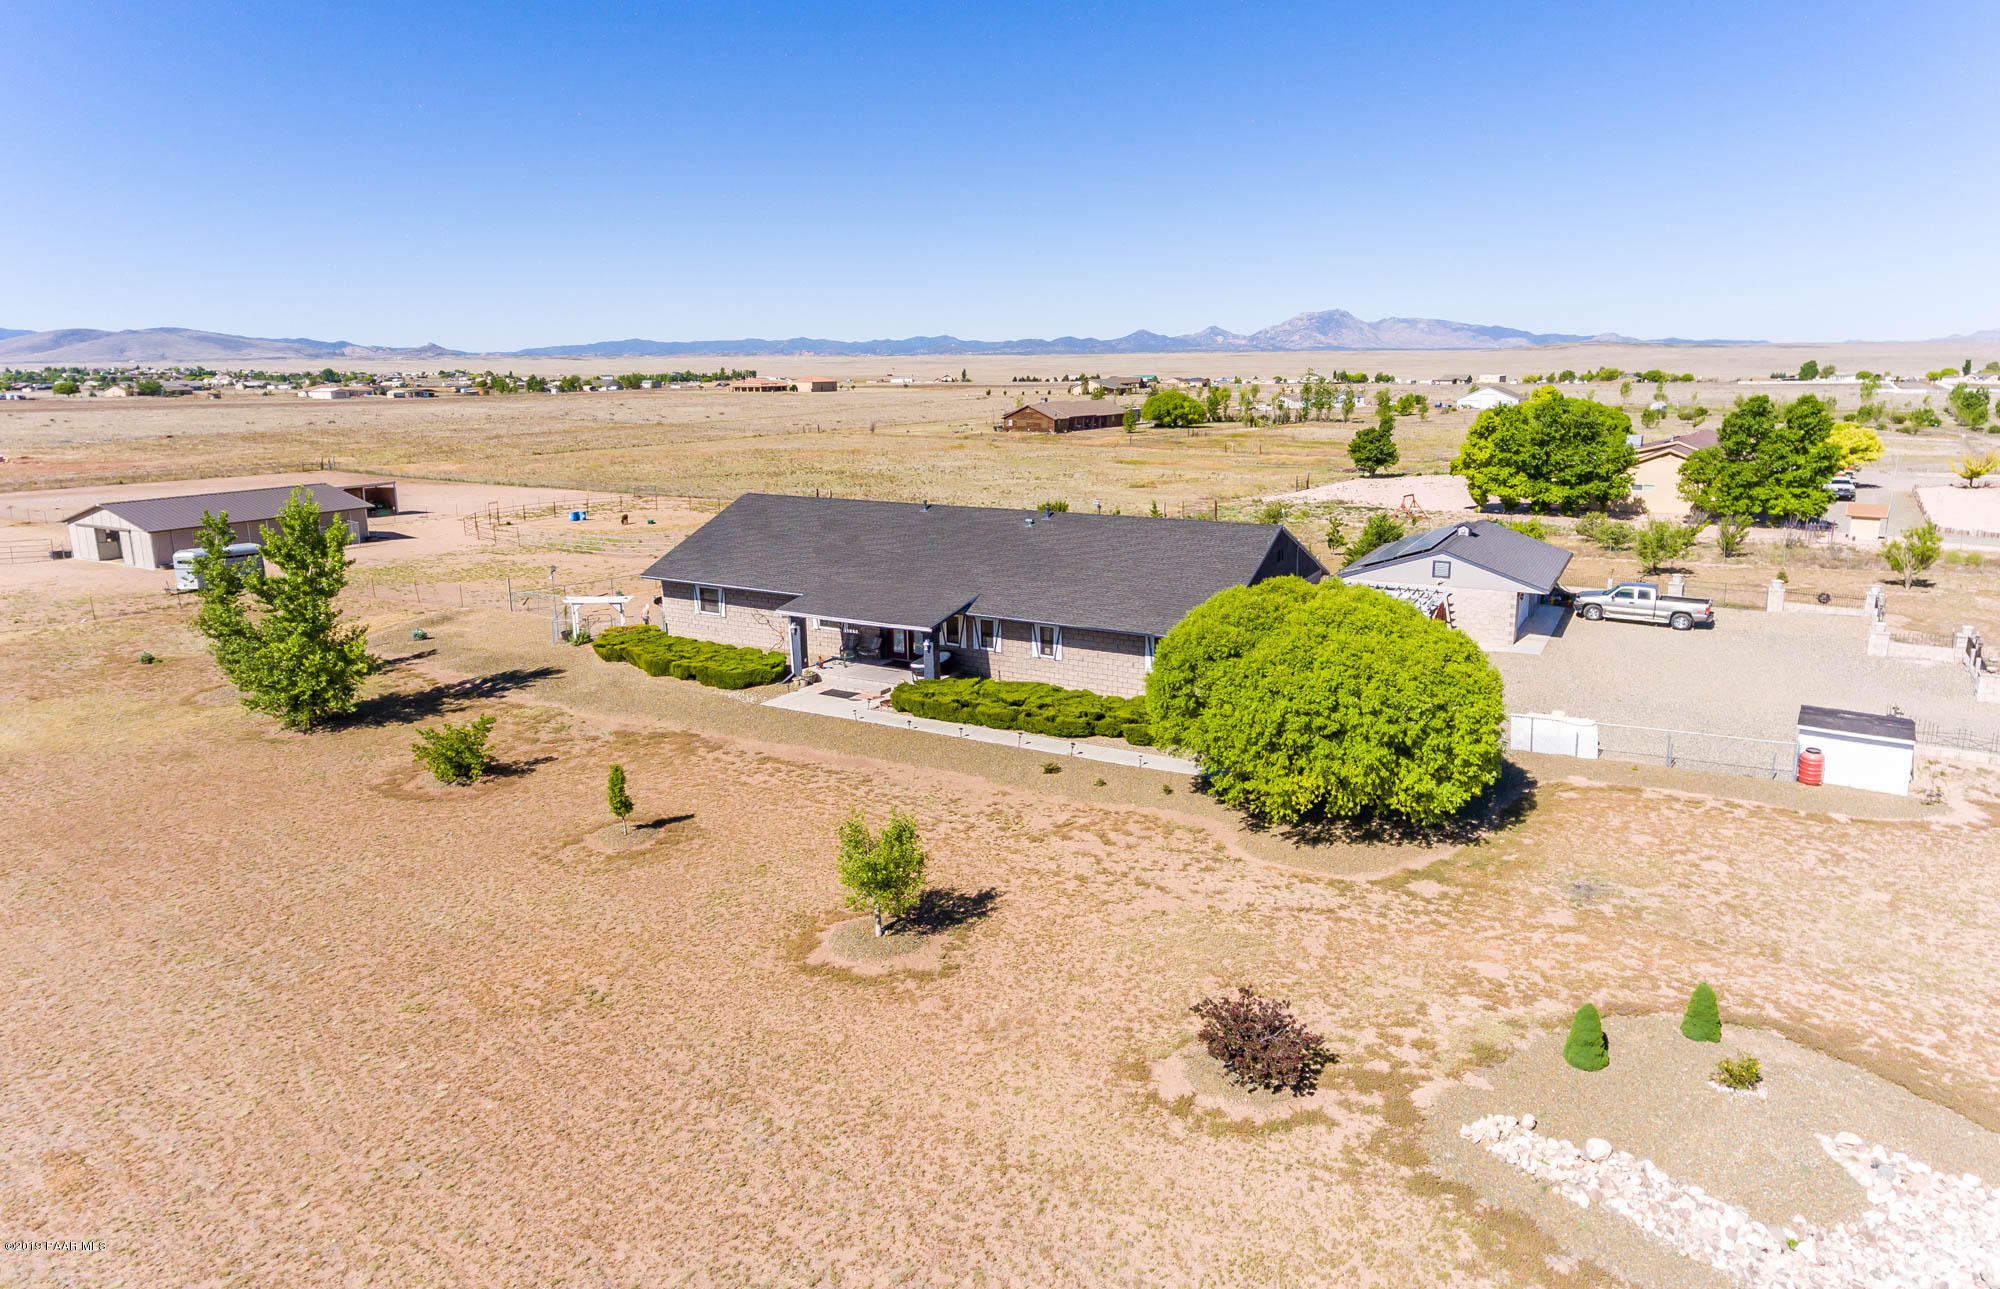 11080 N Antelope Meadows Drive, Prescott Valley, Arizona